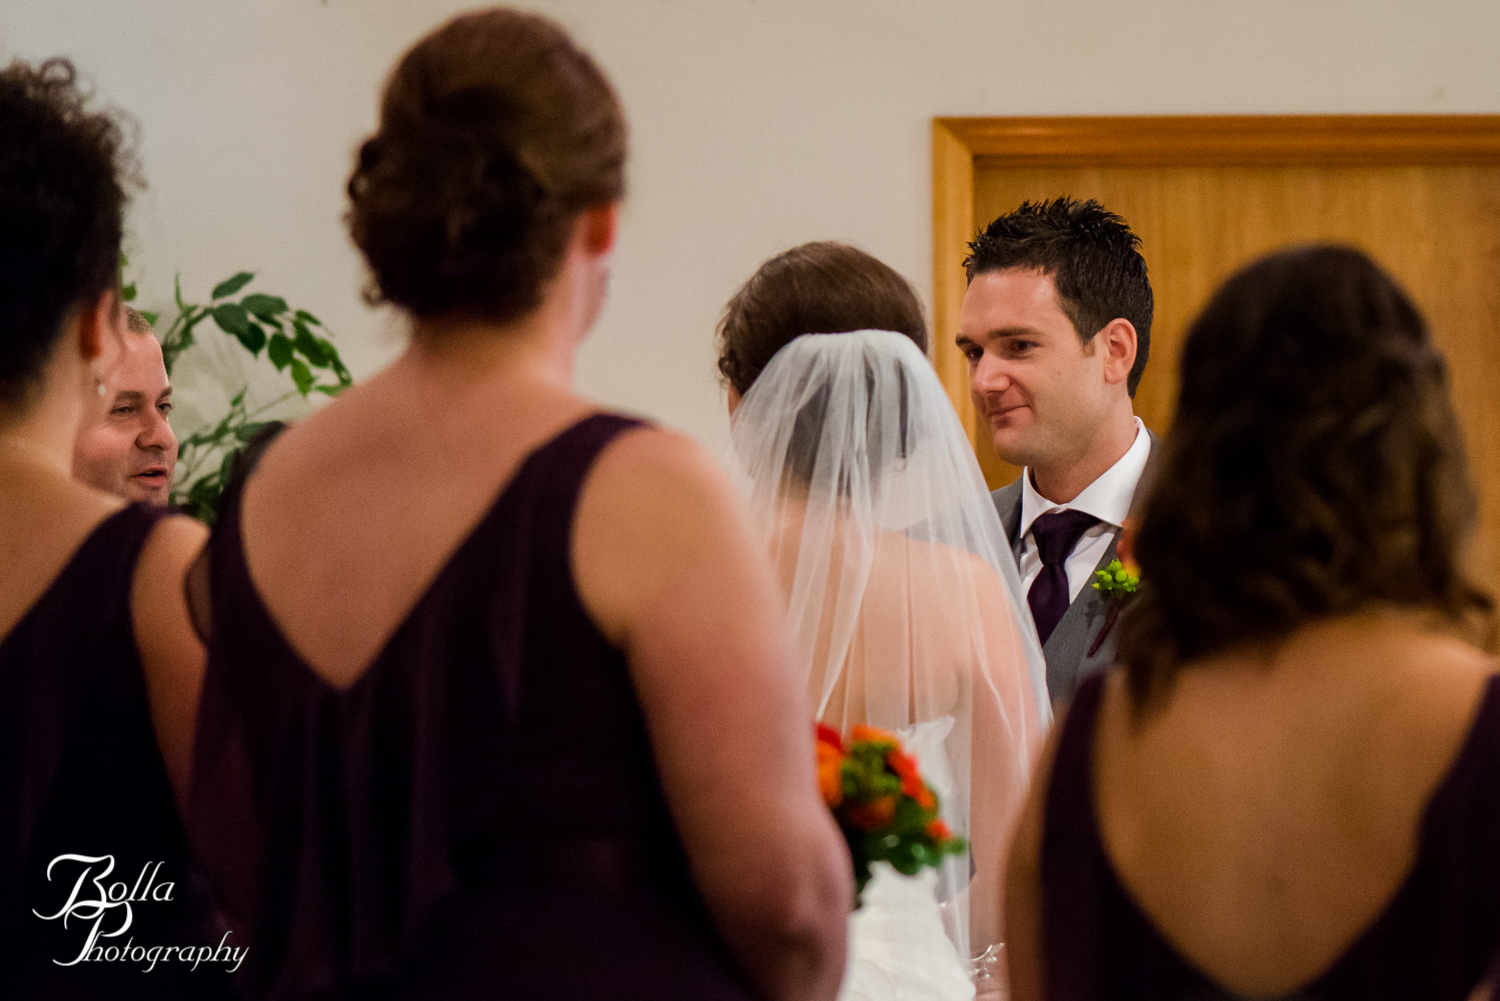 Bolla_Photography_St_Louis_wedding_photographer-0169.jpg